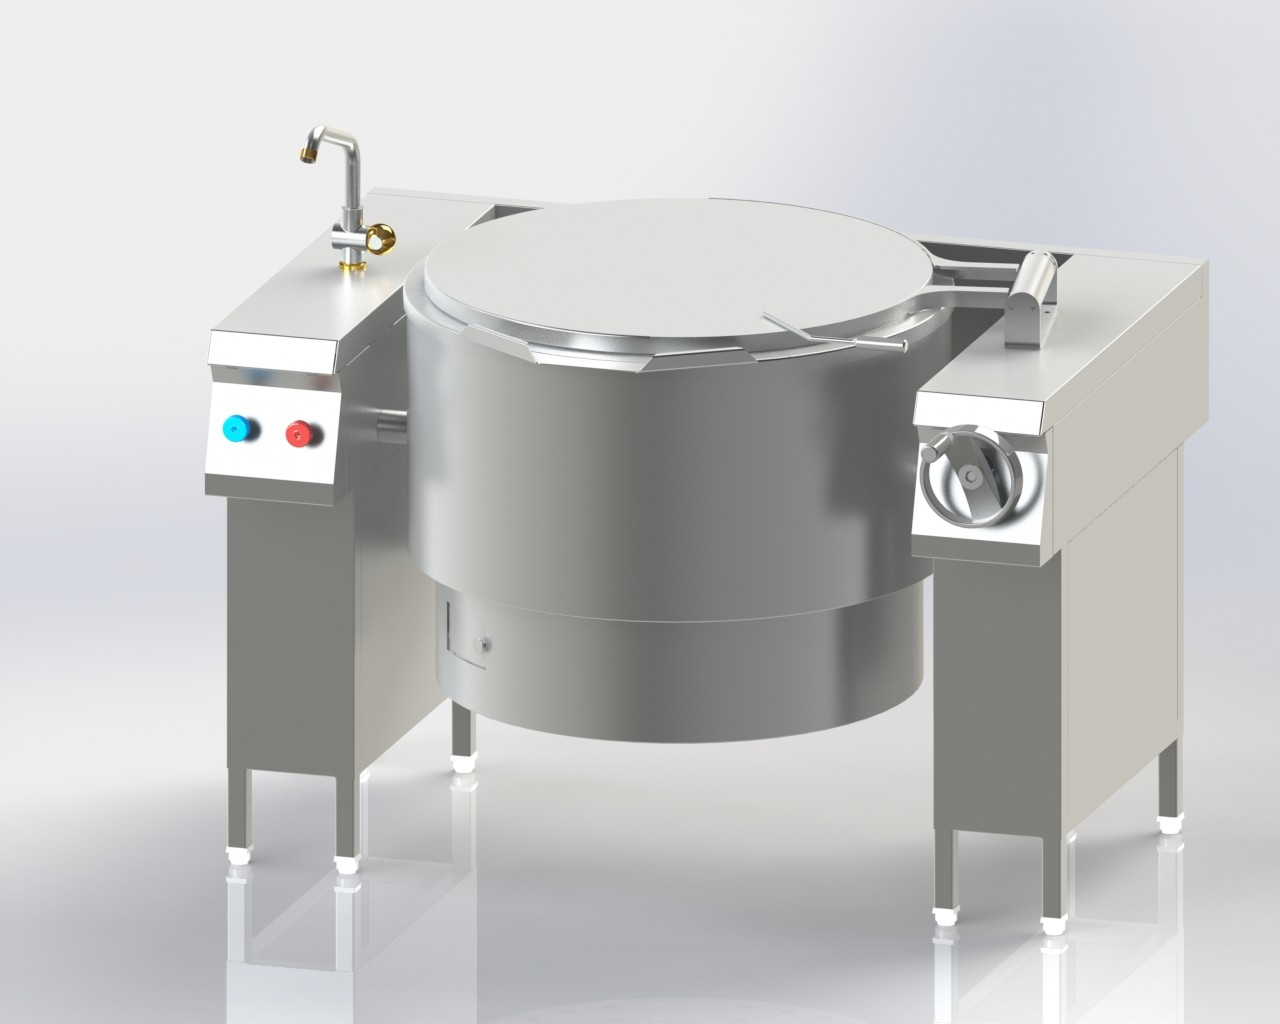 Boiling Pan with Stand for boiling and cooking food in bulk.